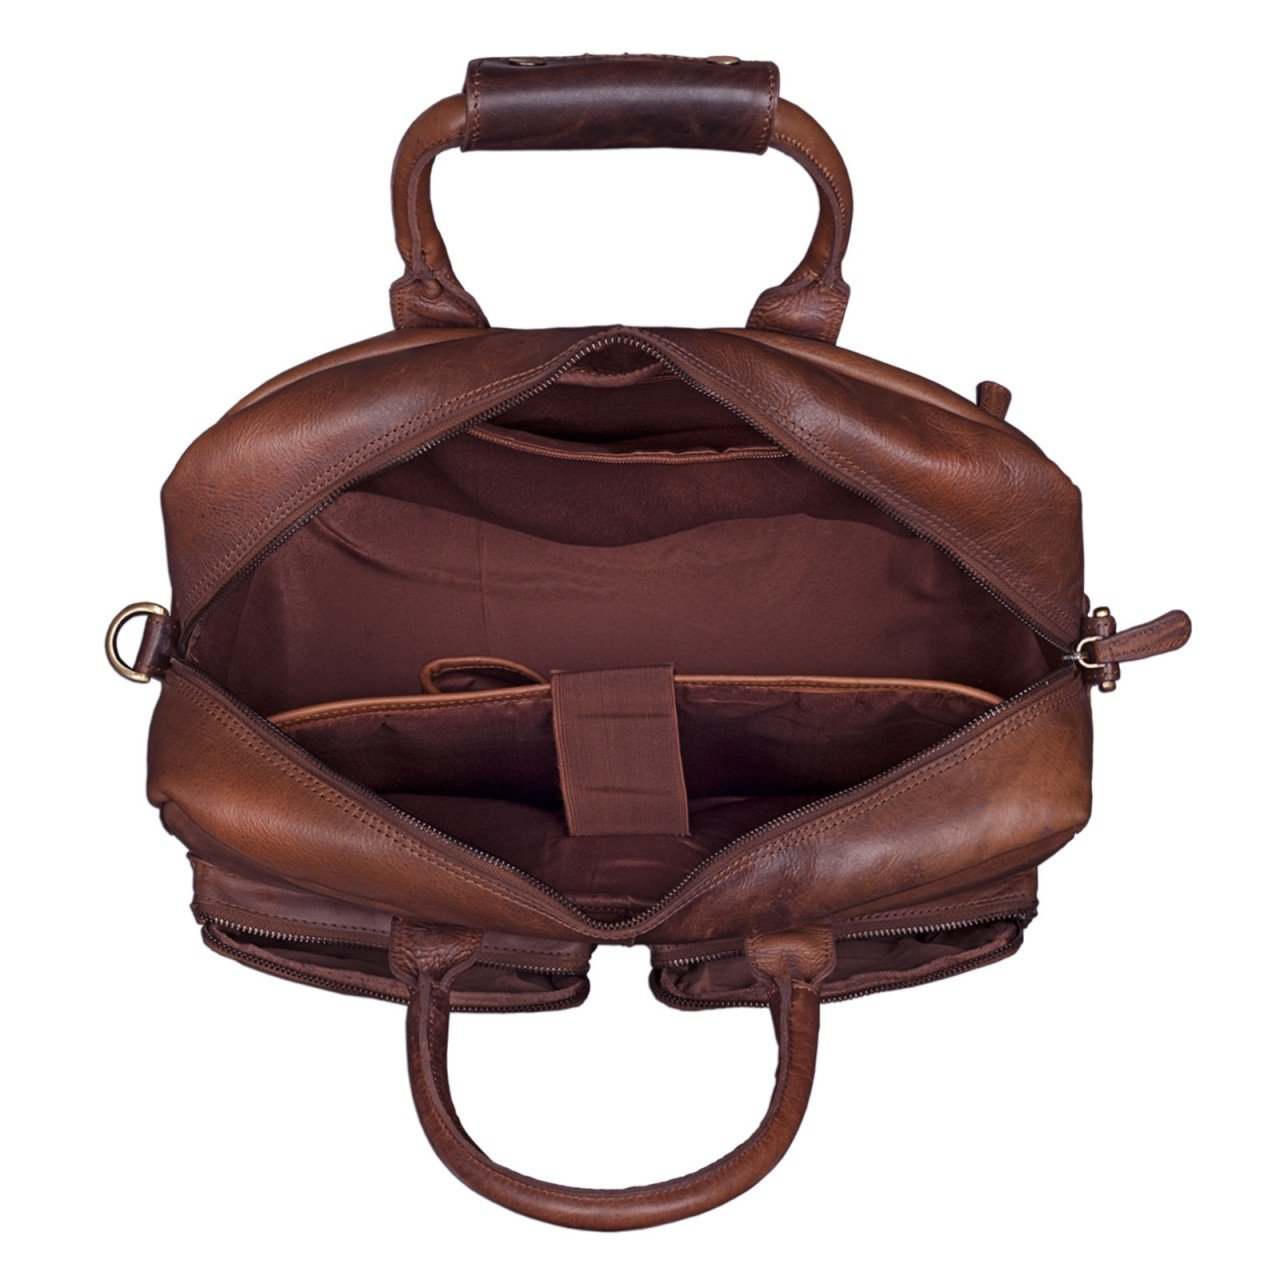 STILORD 'Adventure' Sac de Professeur d'enseignant Vintage Sac d'Ecole Porte-documents d'affaires Hommes Femmes épaule 14 pouces portable en cuir, Couleur:cognac - marron foncé